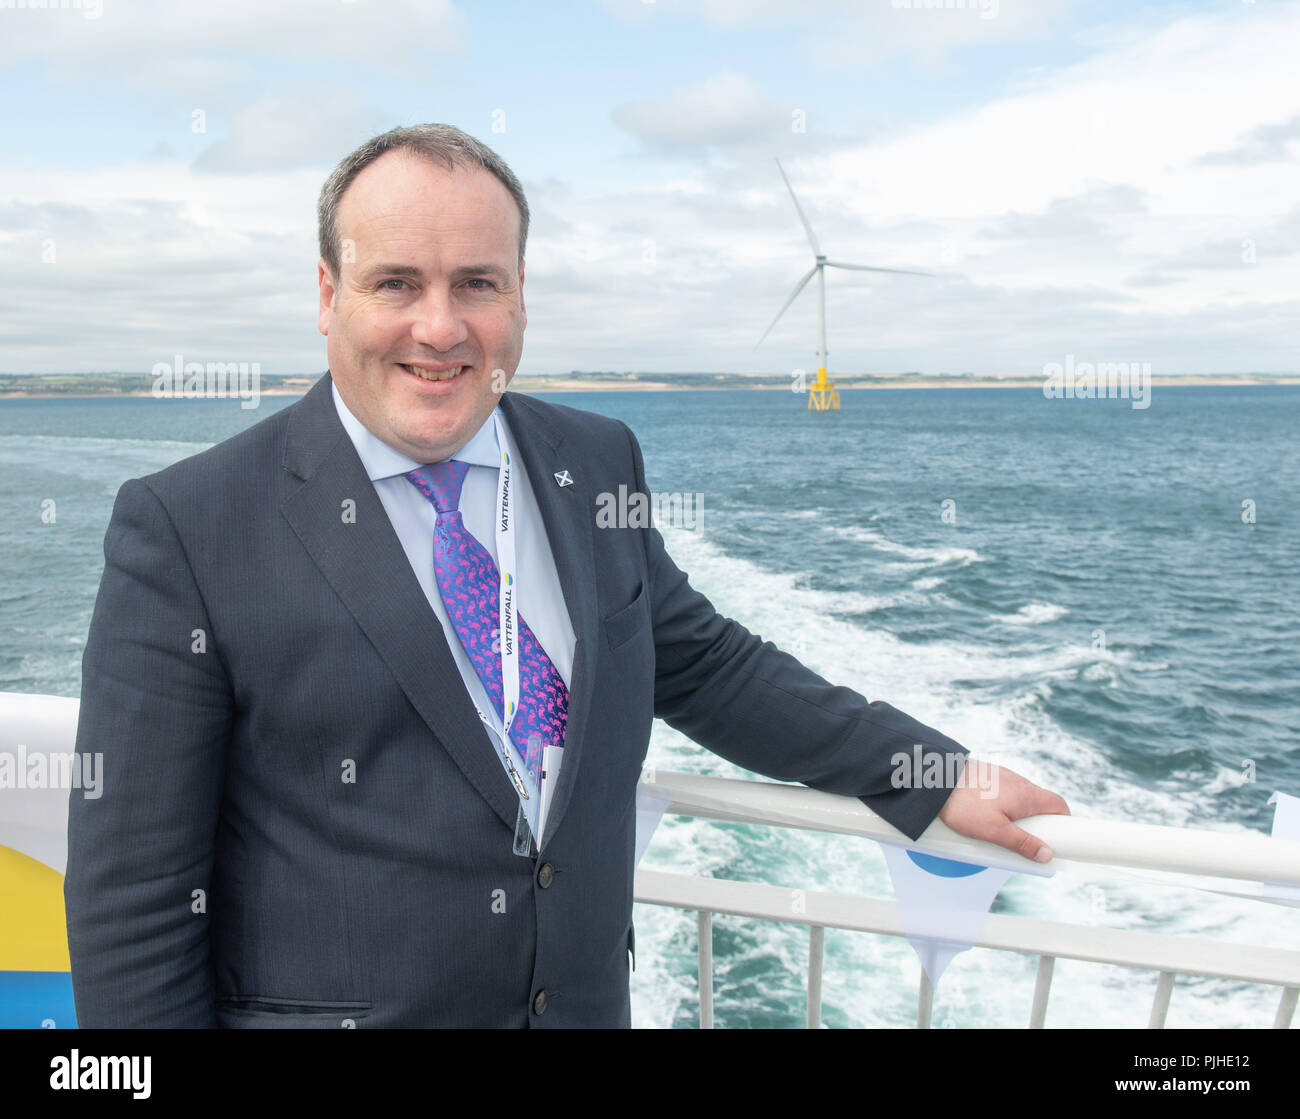 Paul Wheelhouse, Minister for Energy, Connectivity and the Islands at the opening of Vattenfall's European Offshore Wind Deployment Centre (EOWDC) off the coast of Aberdeen. - Stock Image